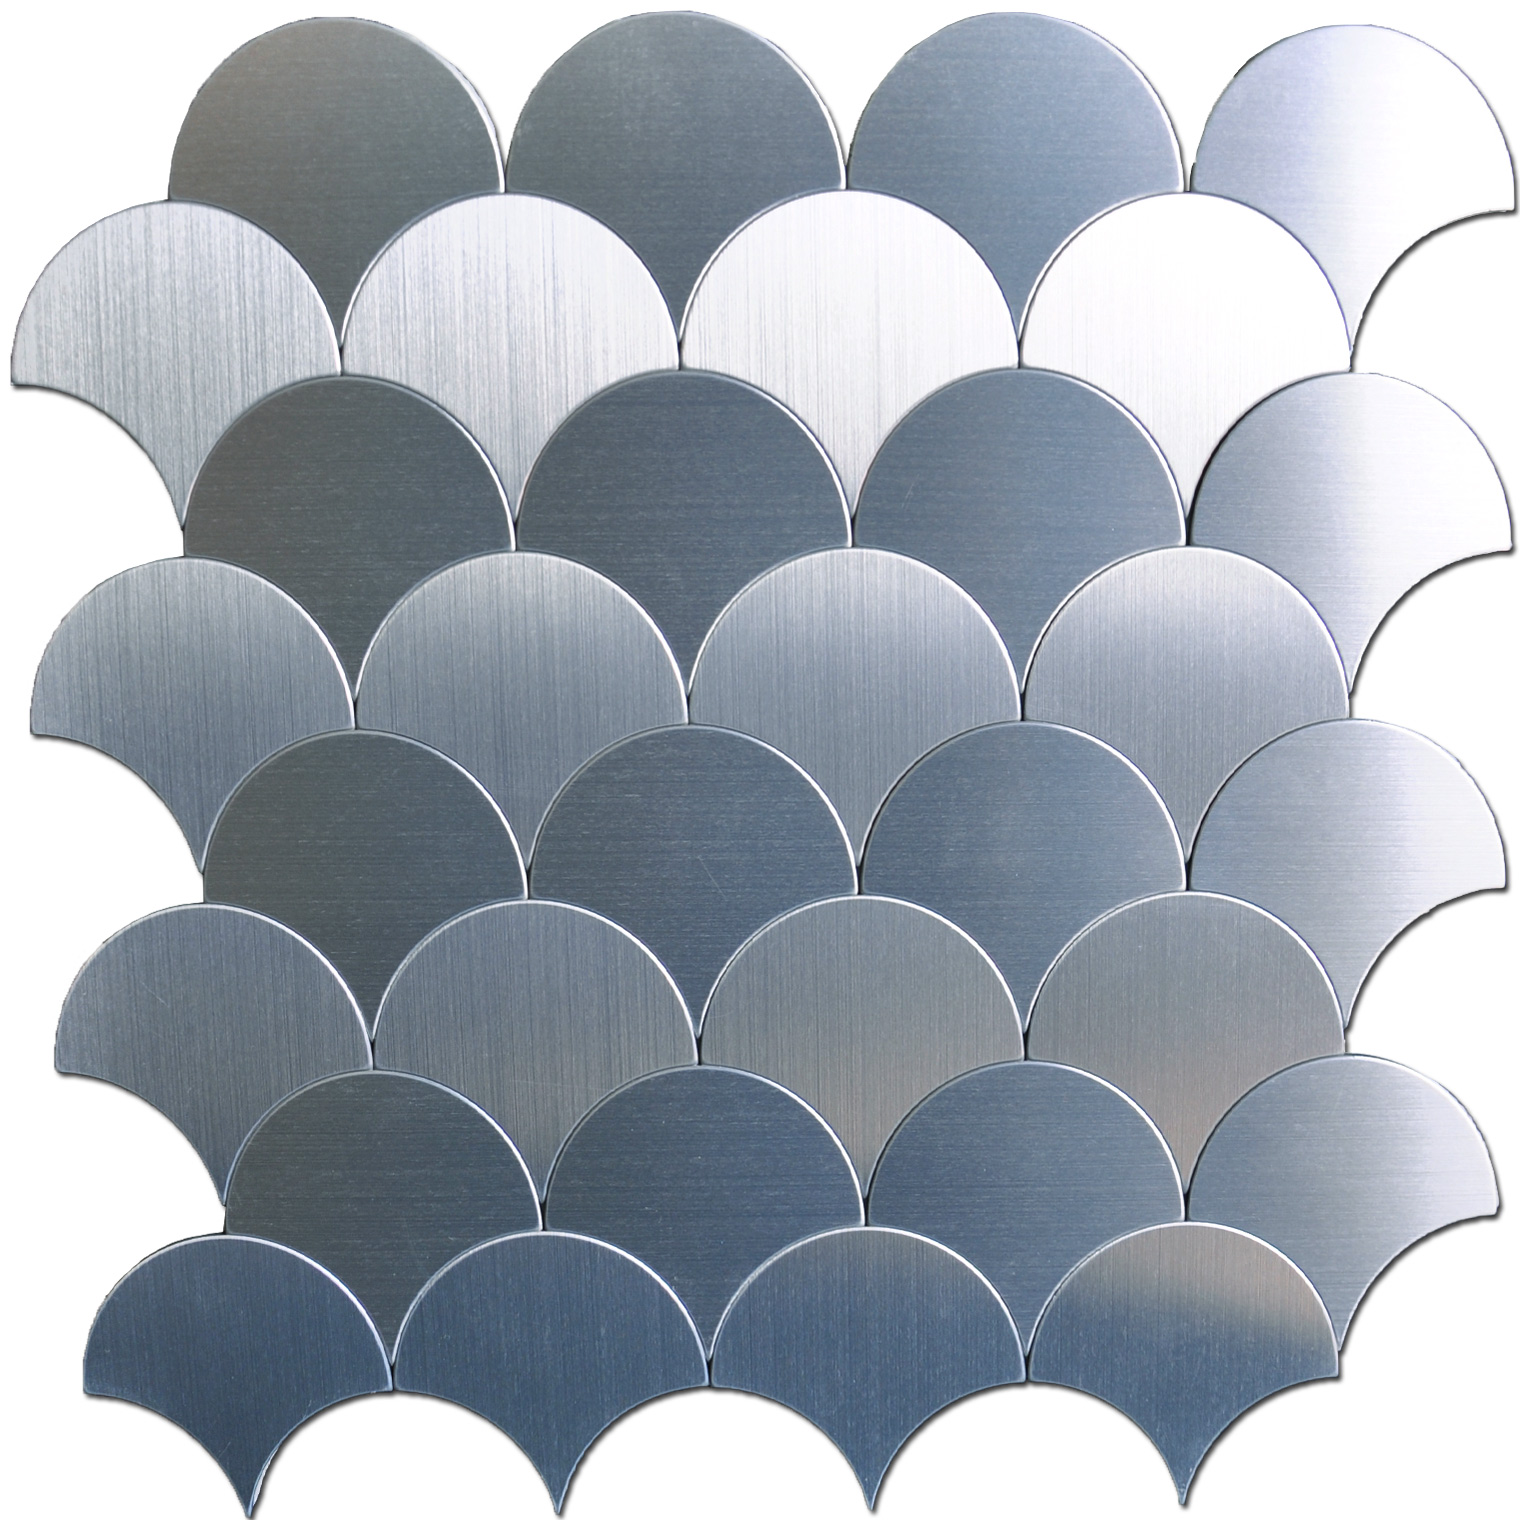 A16071 - Peel and Stick Tile Metal Backsplash, Silver Umbrella